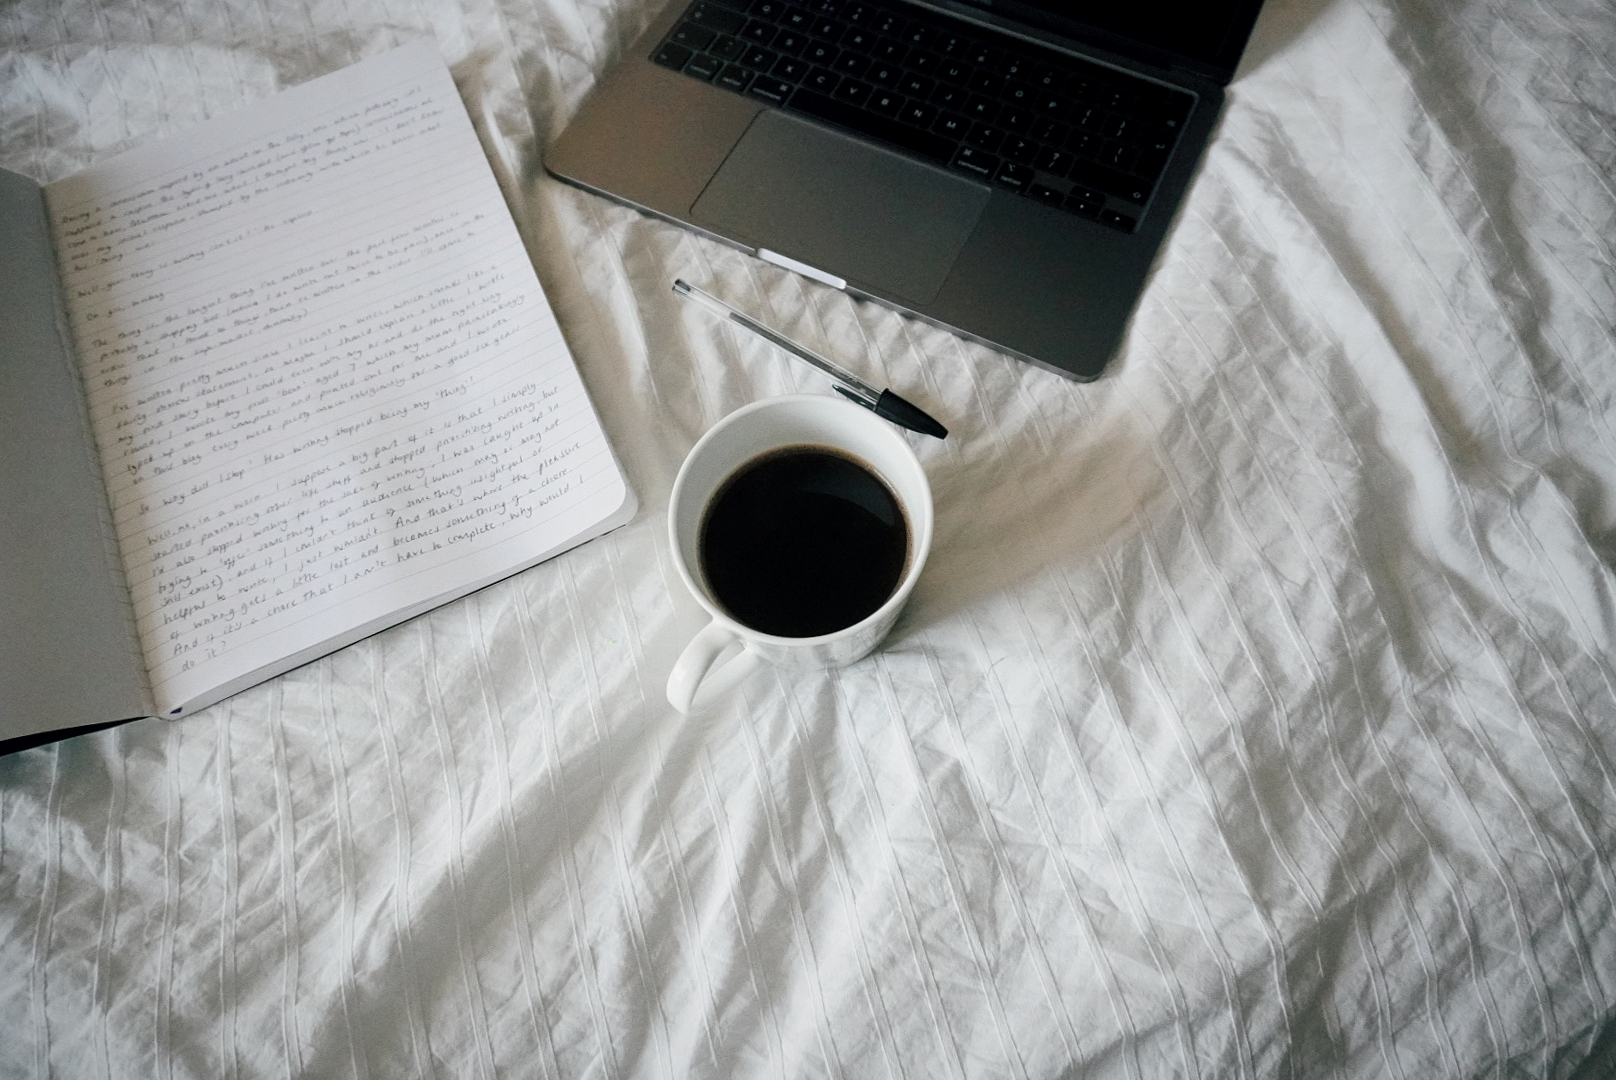 the background is white bedsheets; on the sheets is a laptop, a notebook with some writing in (too small to see) and a mug of black coffee